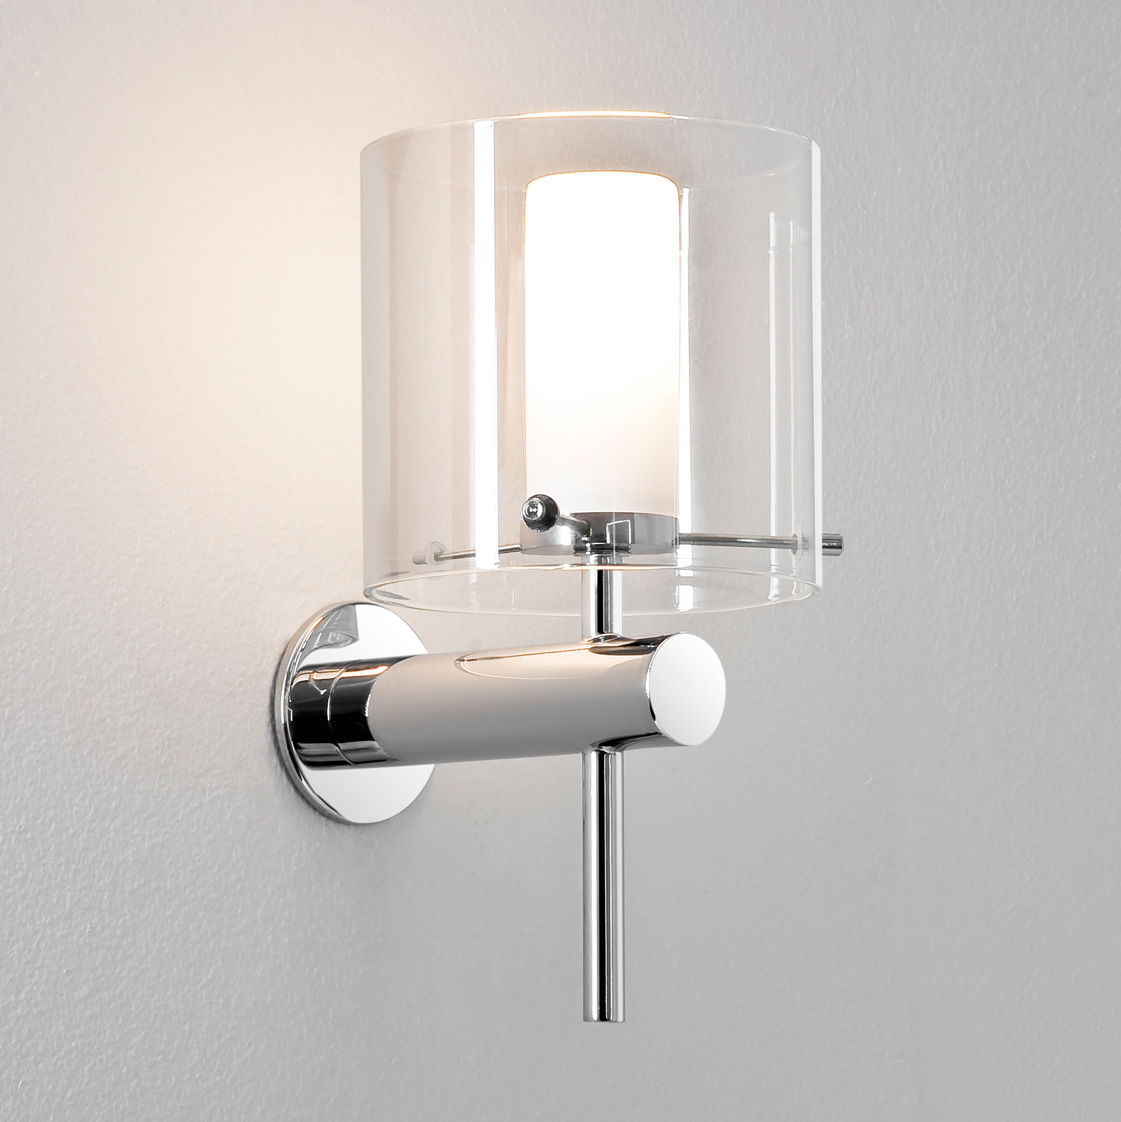 ASTRO Arrezzo 0342 Bathroom wall light 1 x 28W G9 lamp IP44 Chrome Glass shade Thumbnail 1